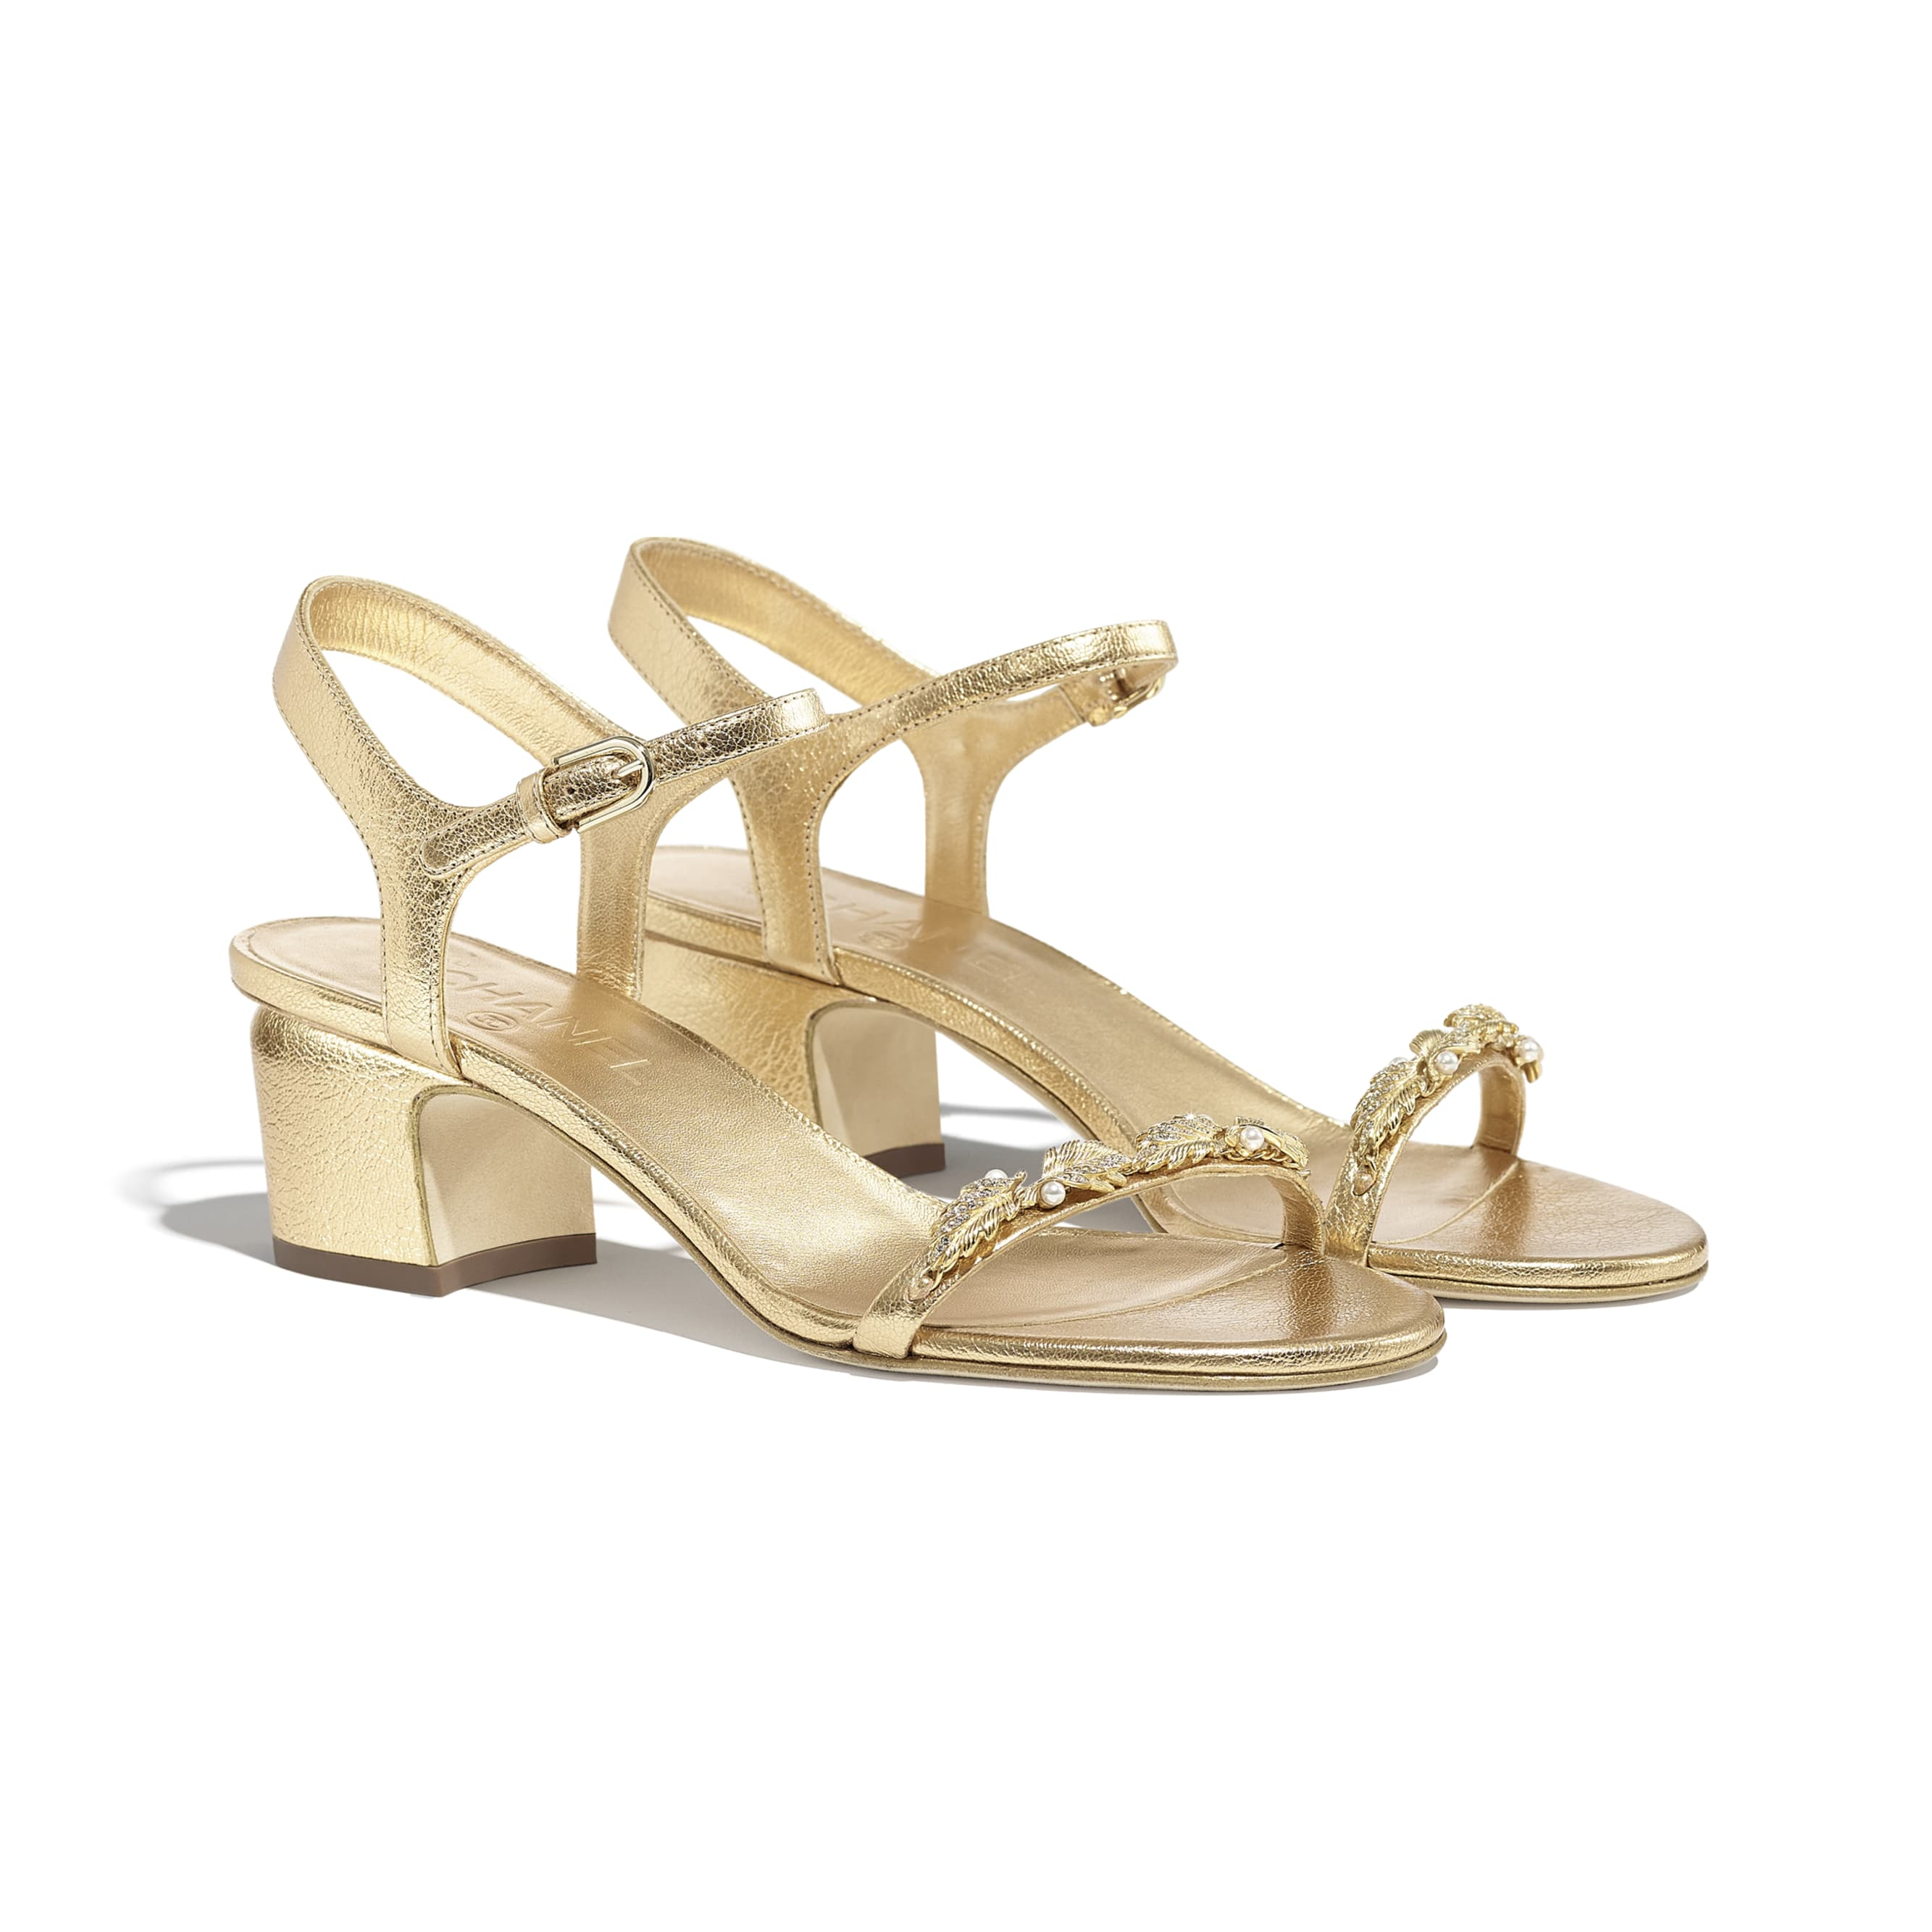 Sandals - Gold - Laminated Goatskin & Jewelry  - CHANEL - Alternative view - see standard sized version